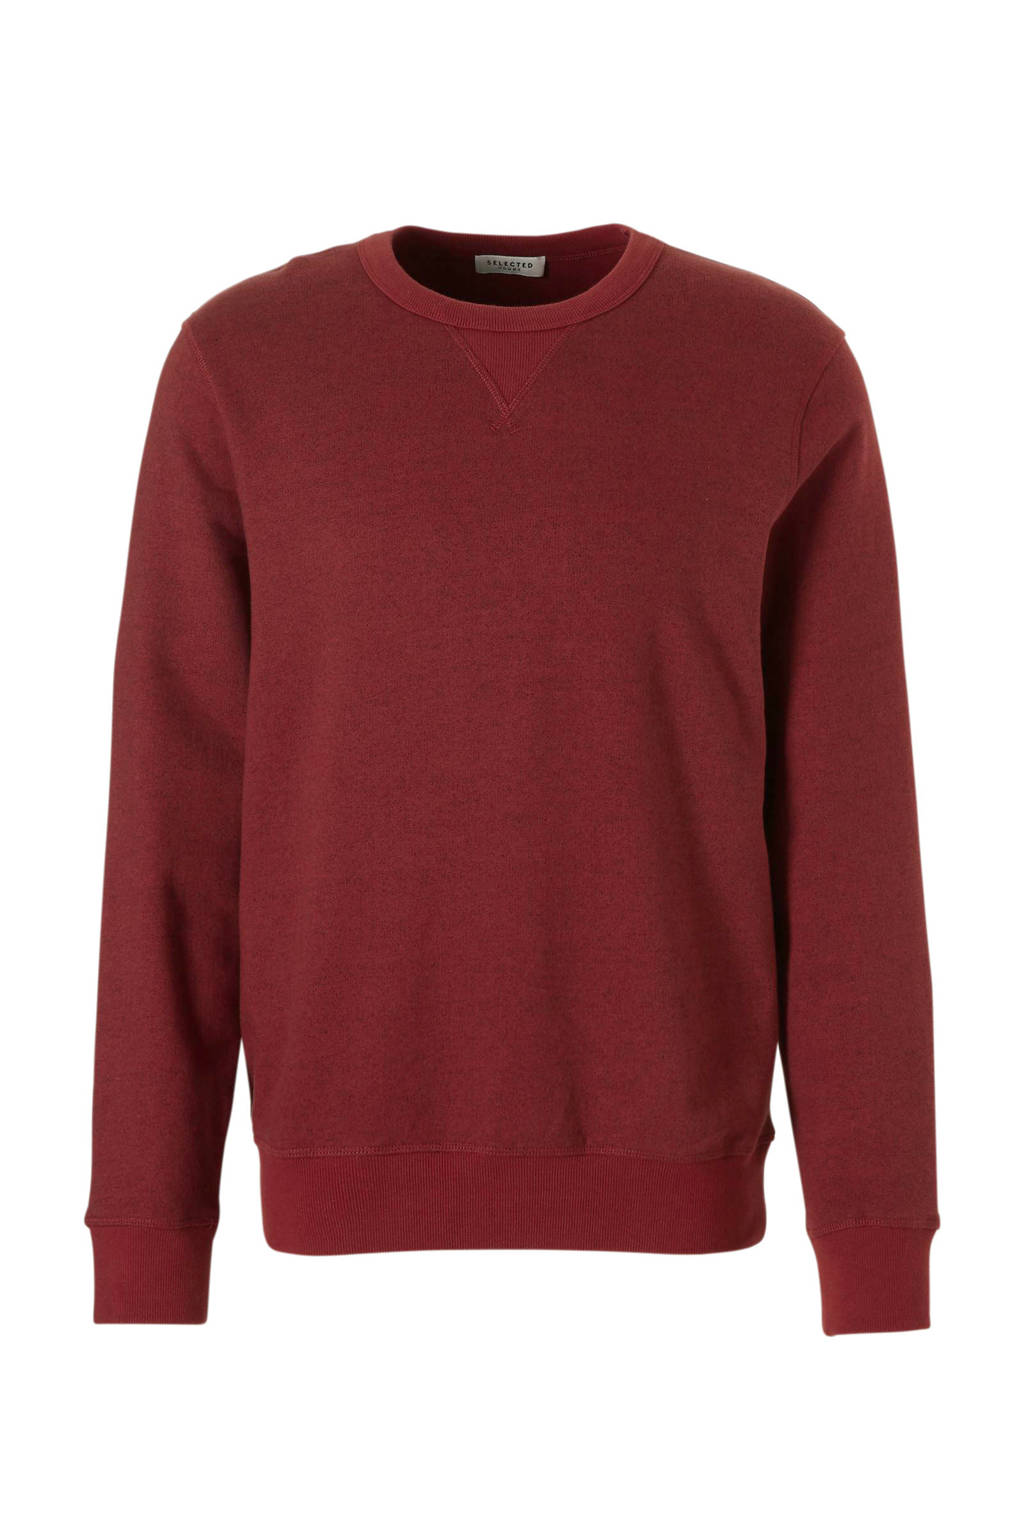 SELECTED HOMME Simon sweater, Brique